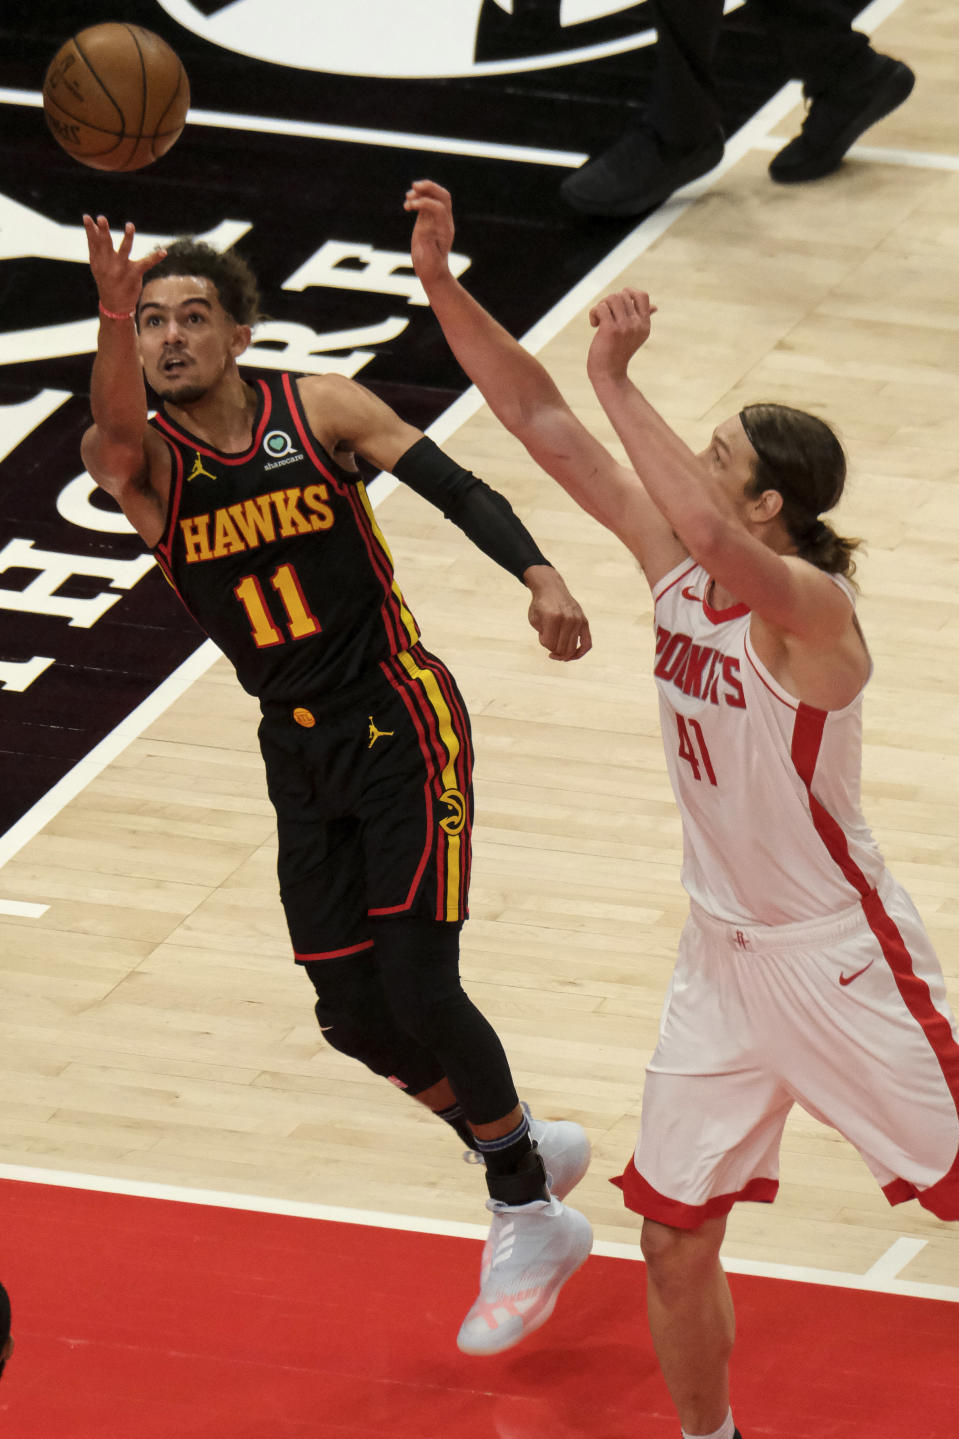 Atlanta Hawks guard Trae Young (11) shoots as Houston Rockets forward Kelly Olynyk (41) rushes in to try to block during the first half of an NBA basketball game on Sunday, May 16, 2021, in Atlanta. (AP Photo/Ben Gray)